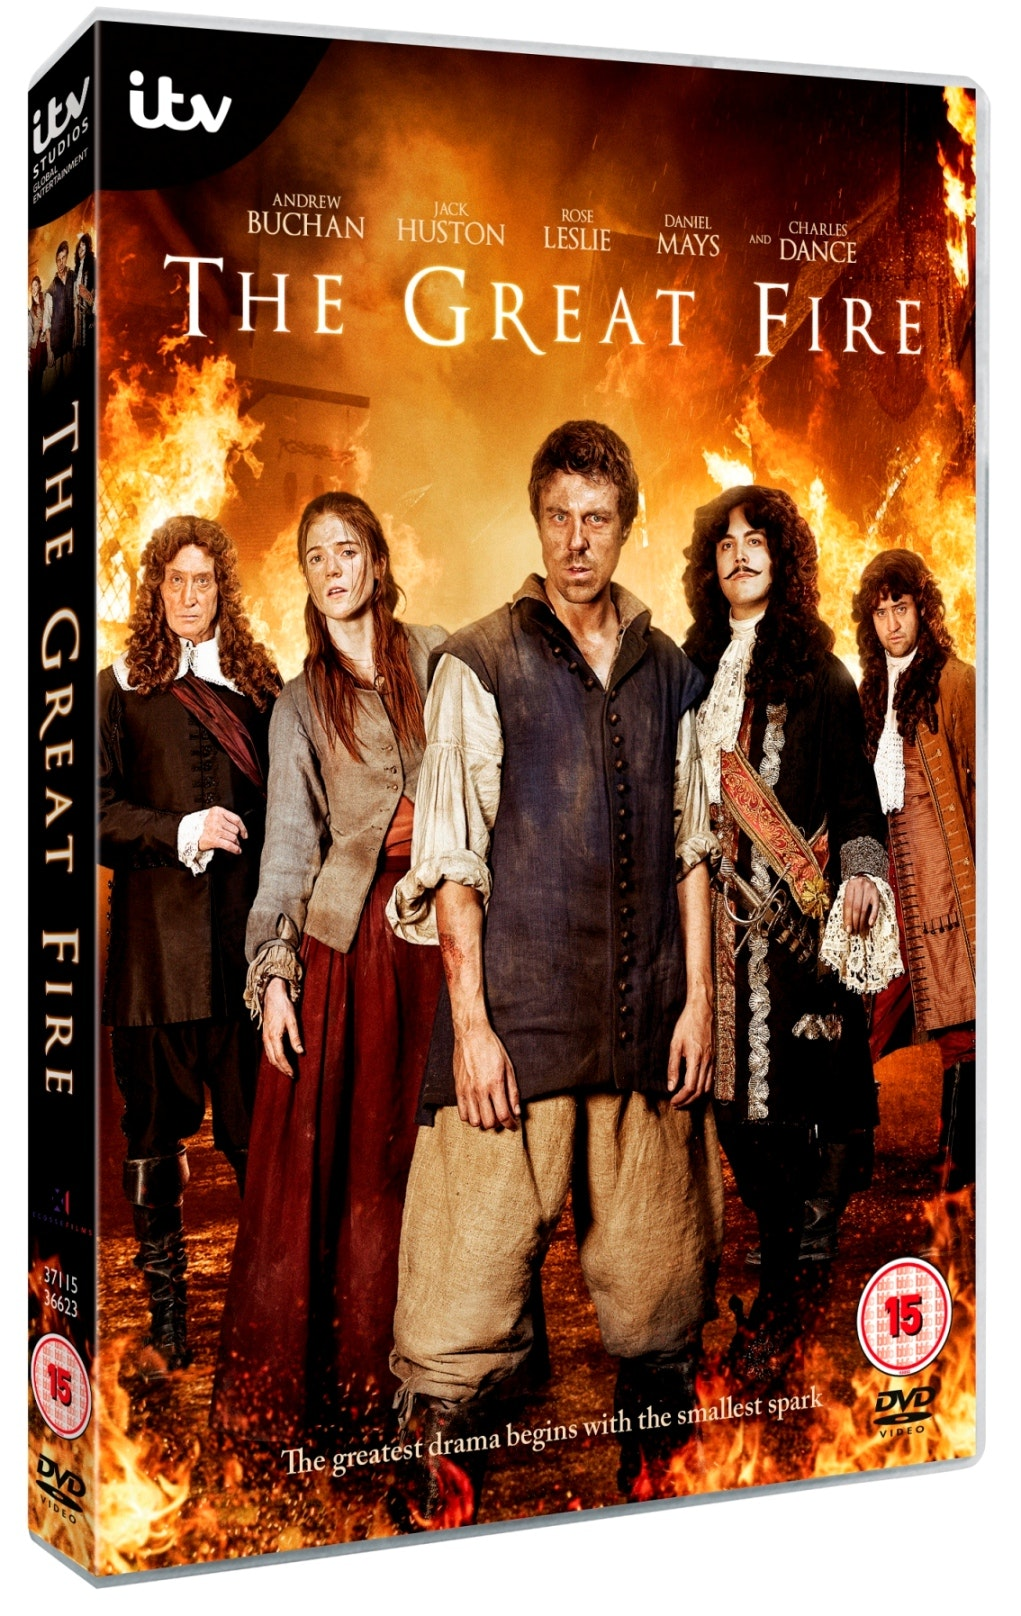 The Great Fire sweepstakes